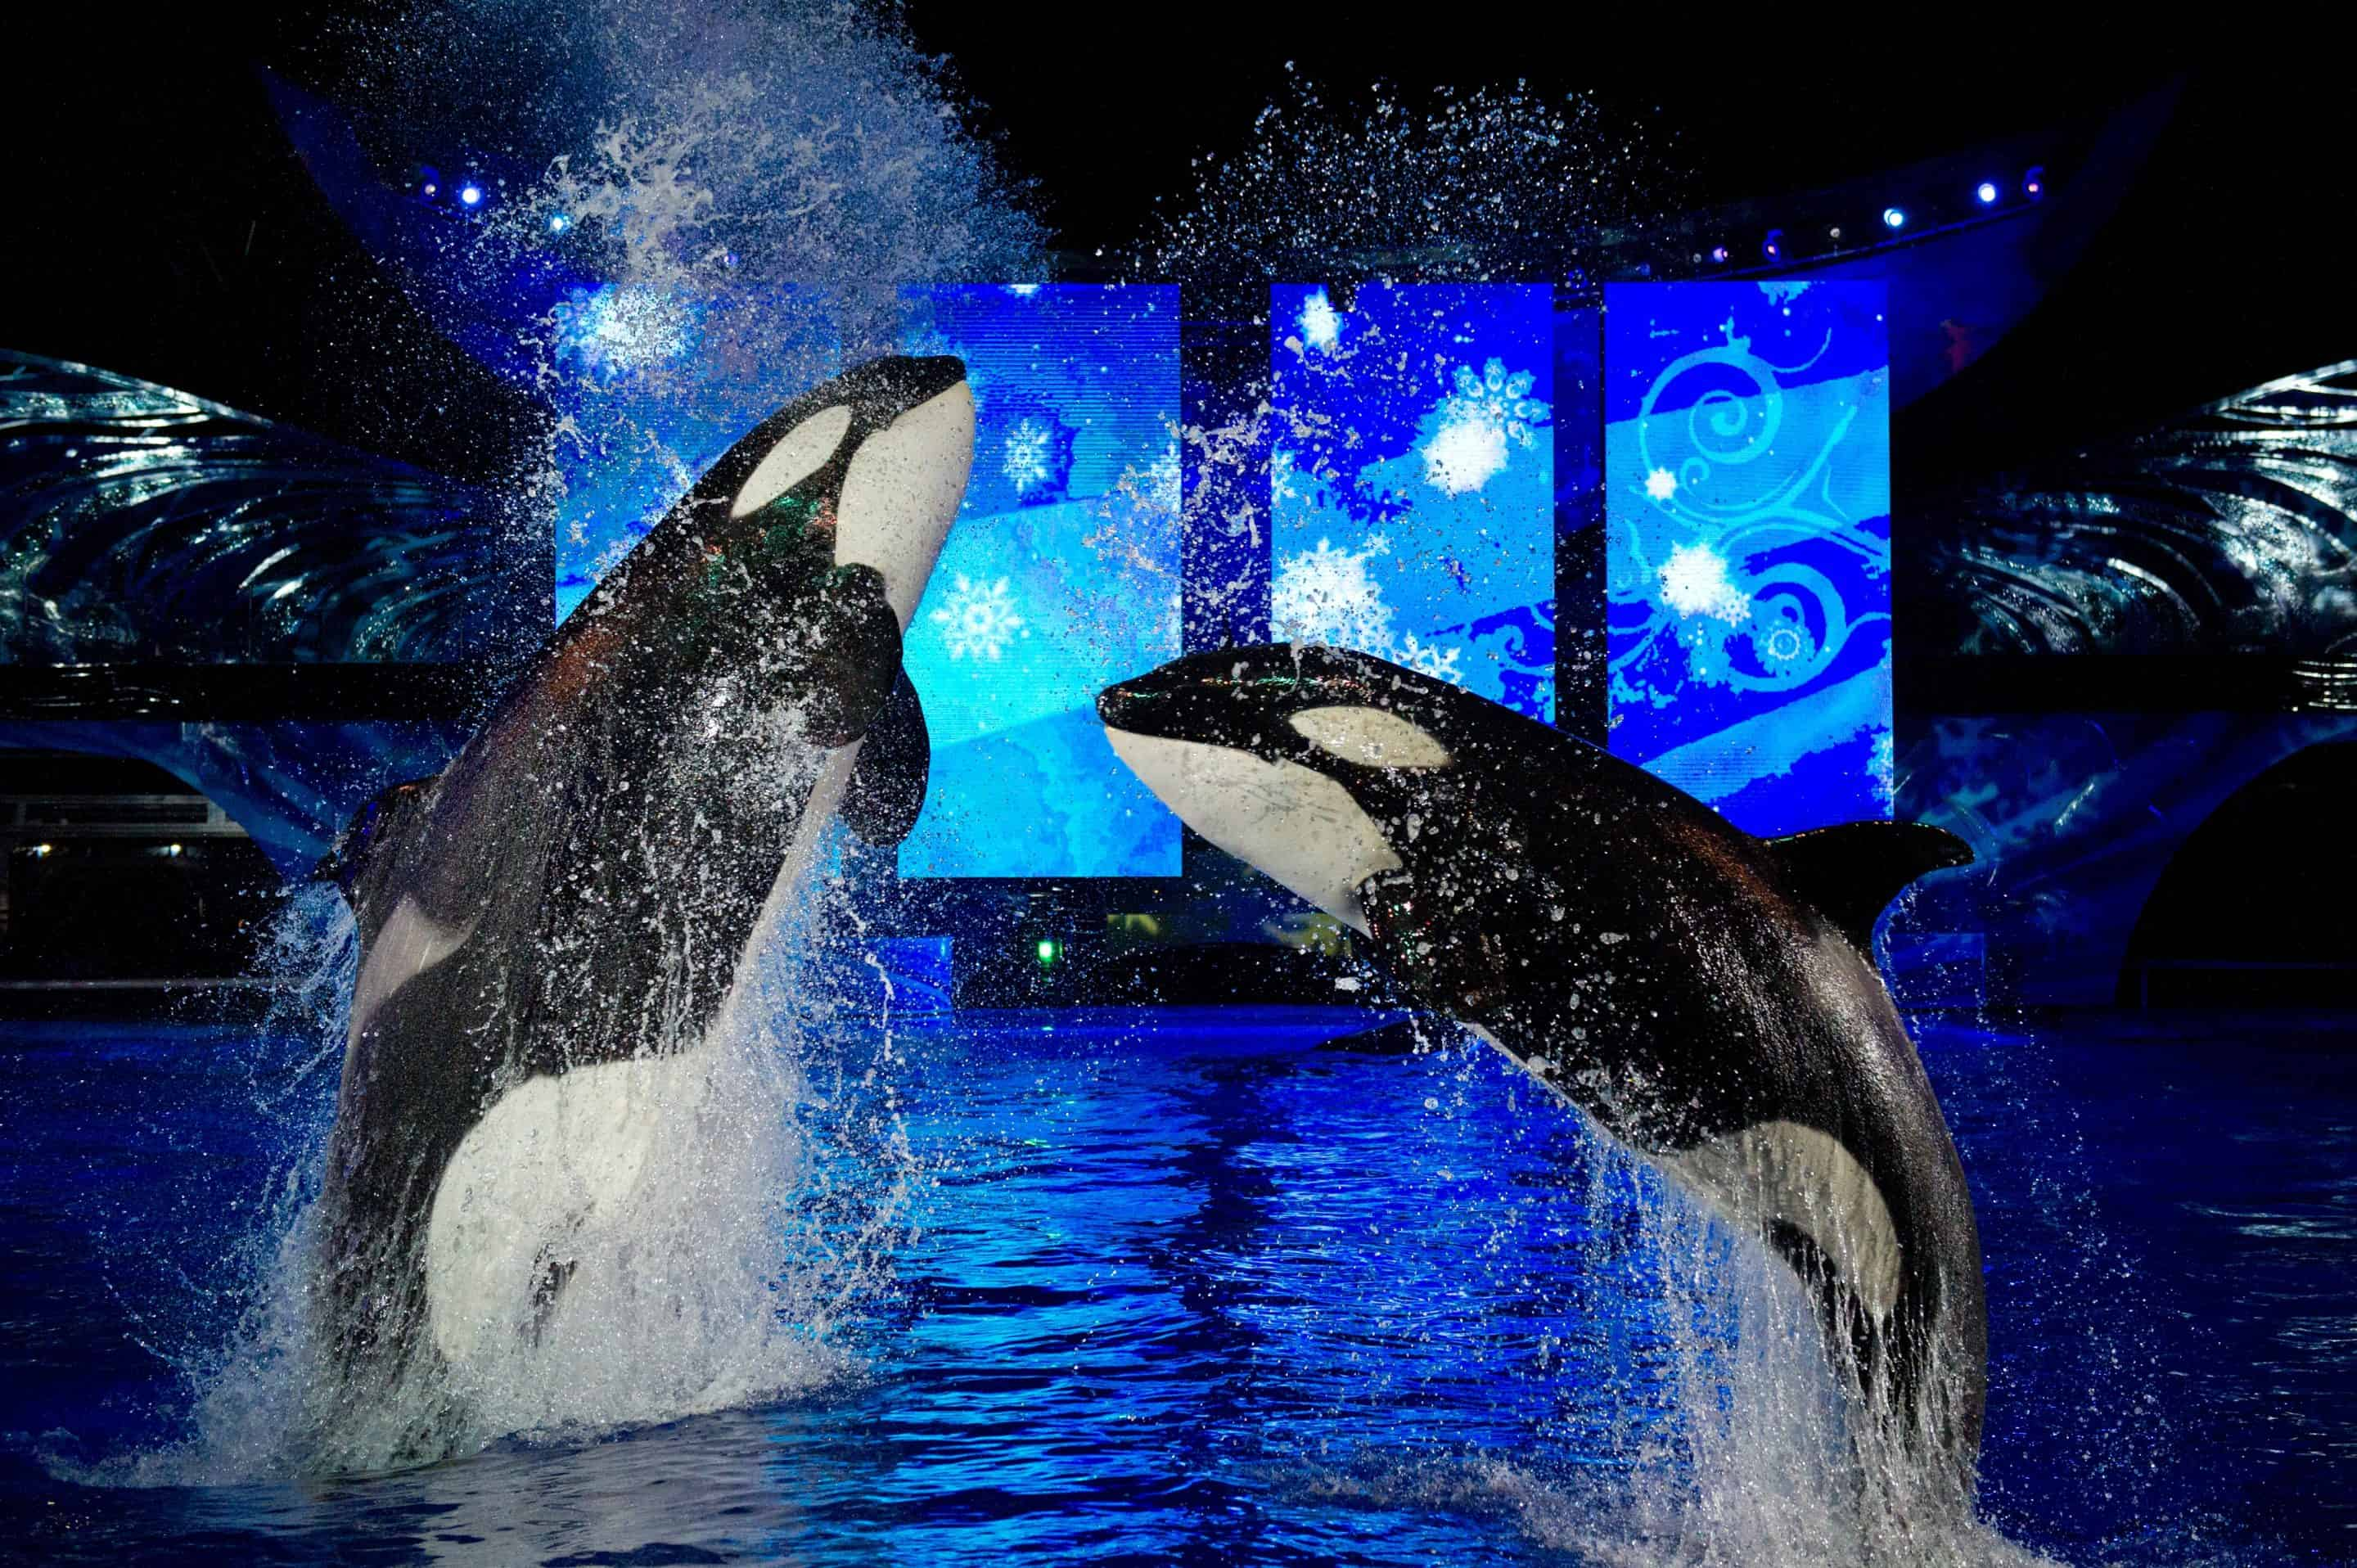 Sea World's Christmas Celebration Lights Up the Season